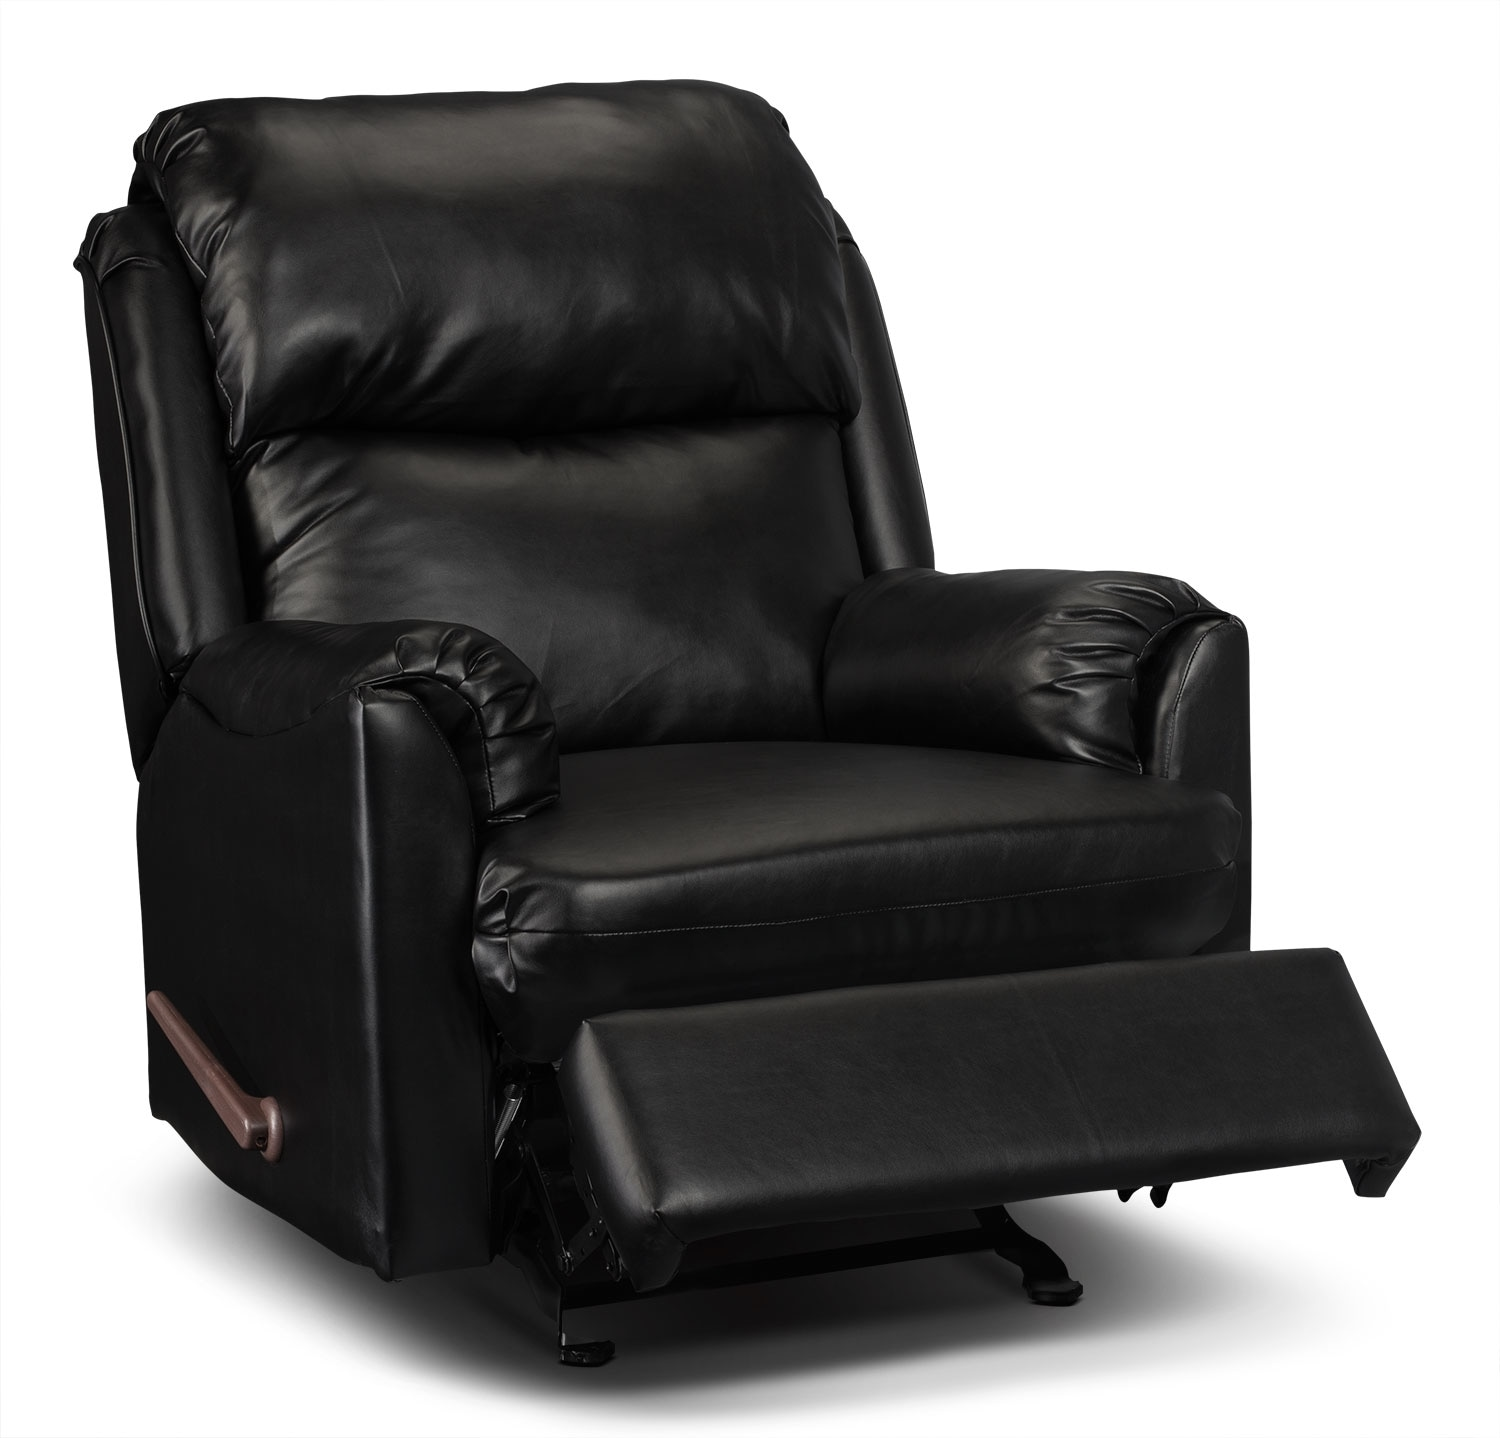 Drogba Faux Leather Recliner - Black | The Brick